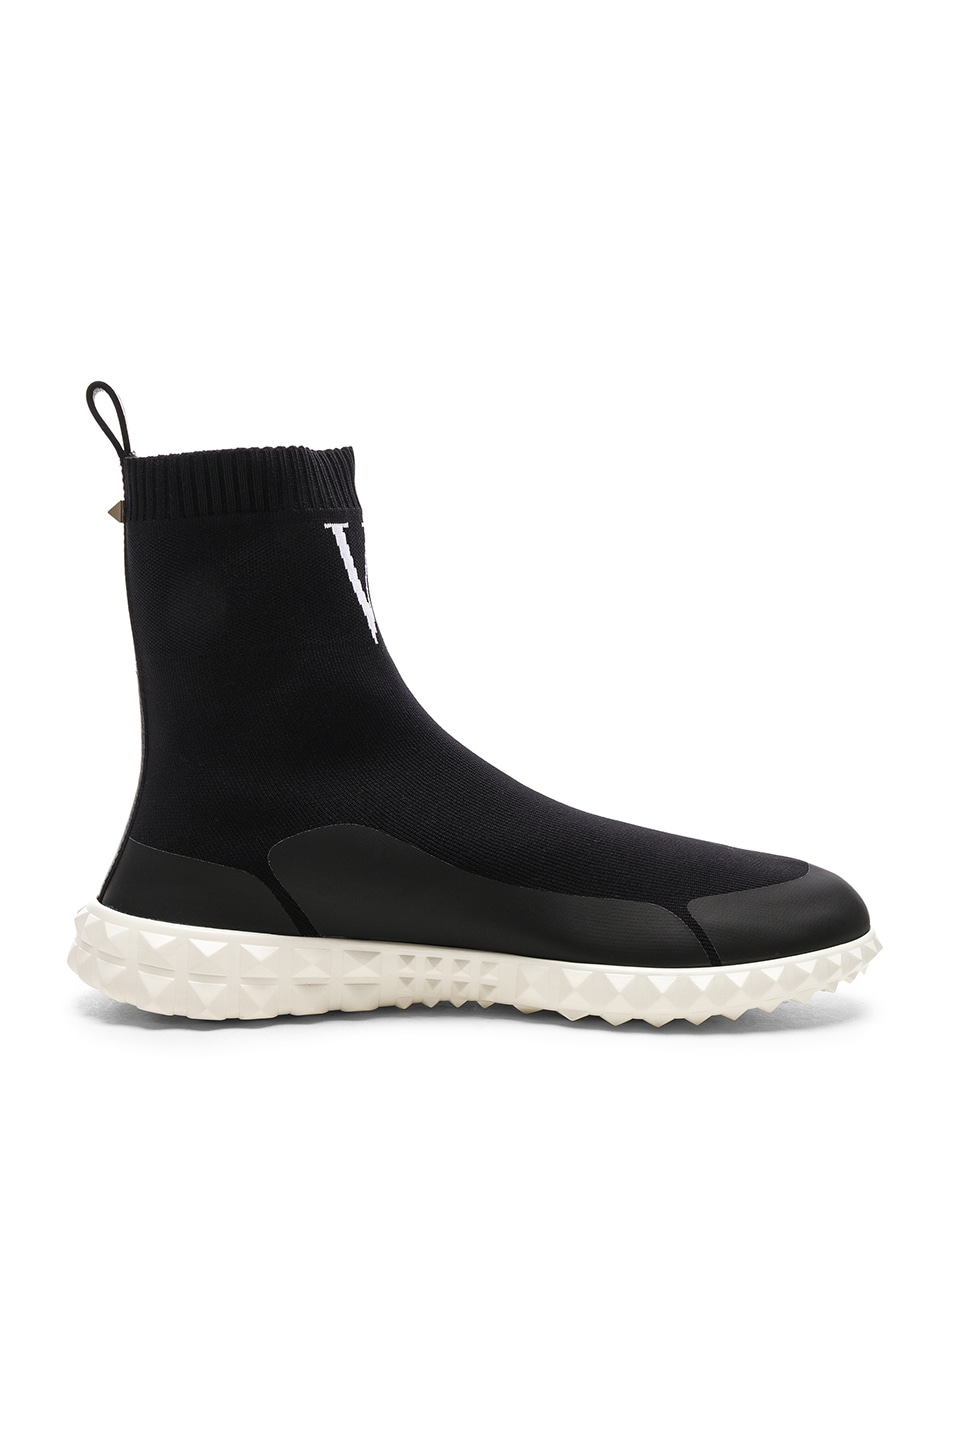 Image 7 of Valentino VLTN High Top Sock Sneakers in Black & White